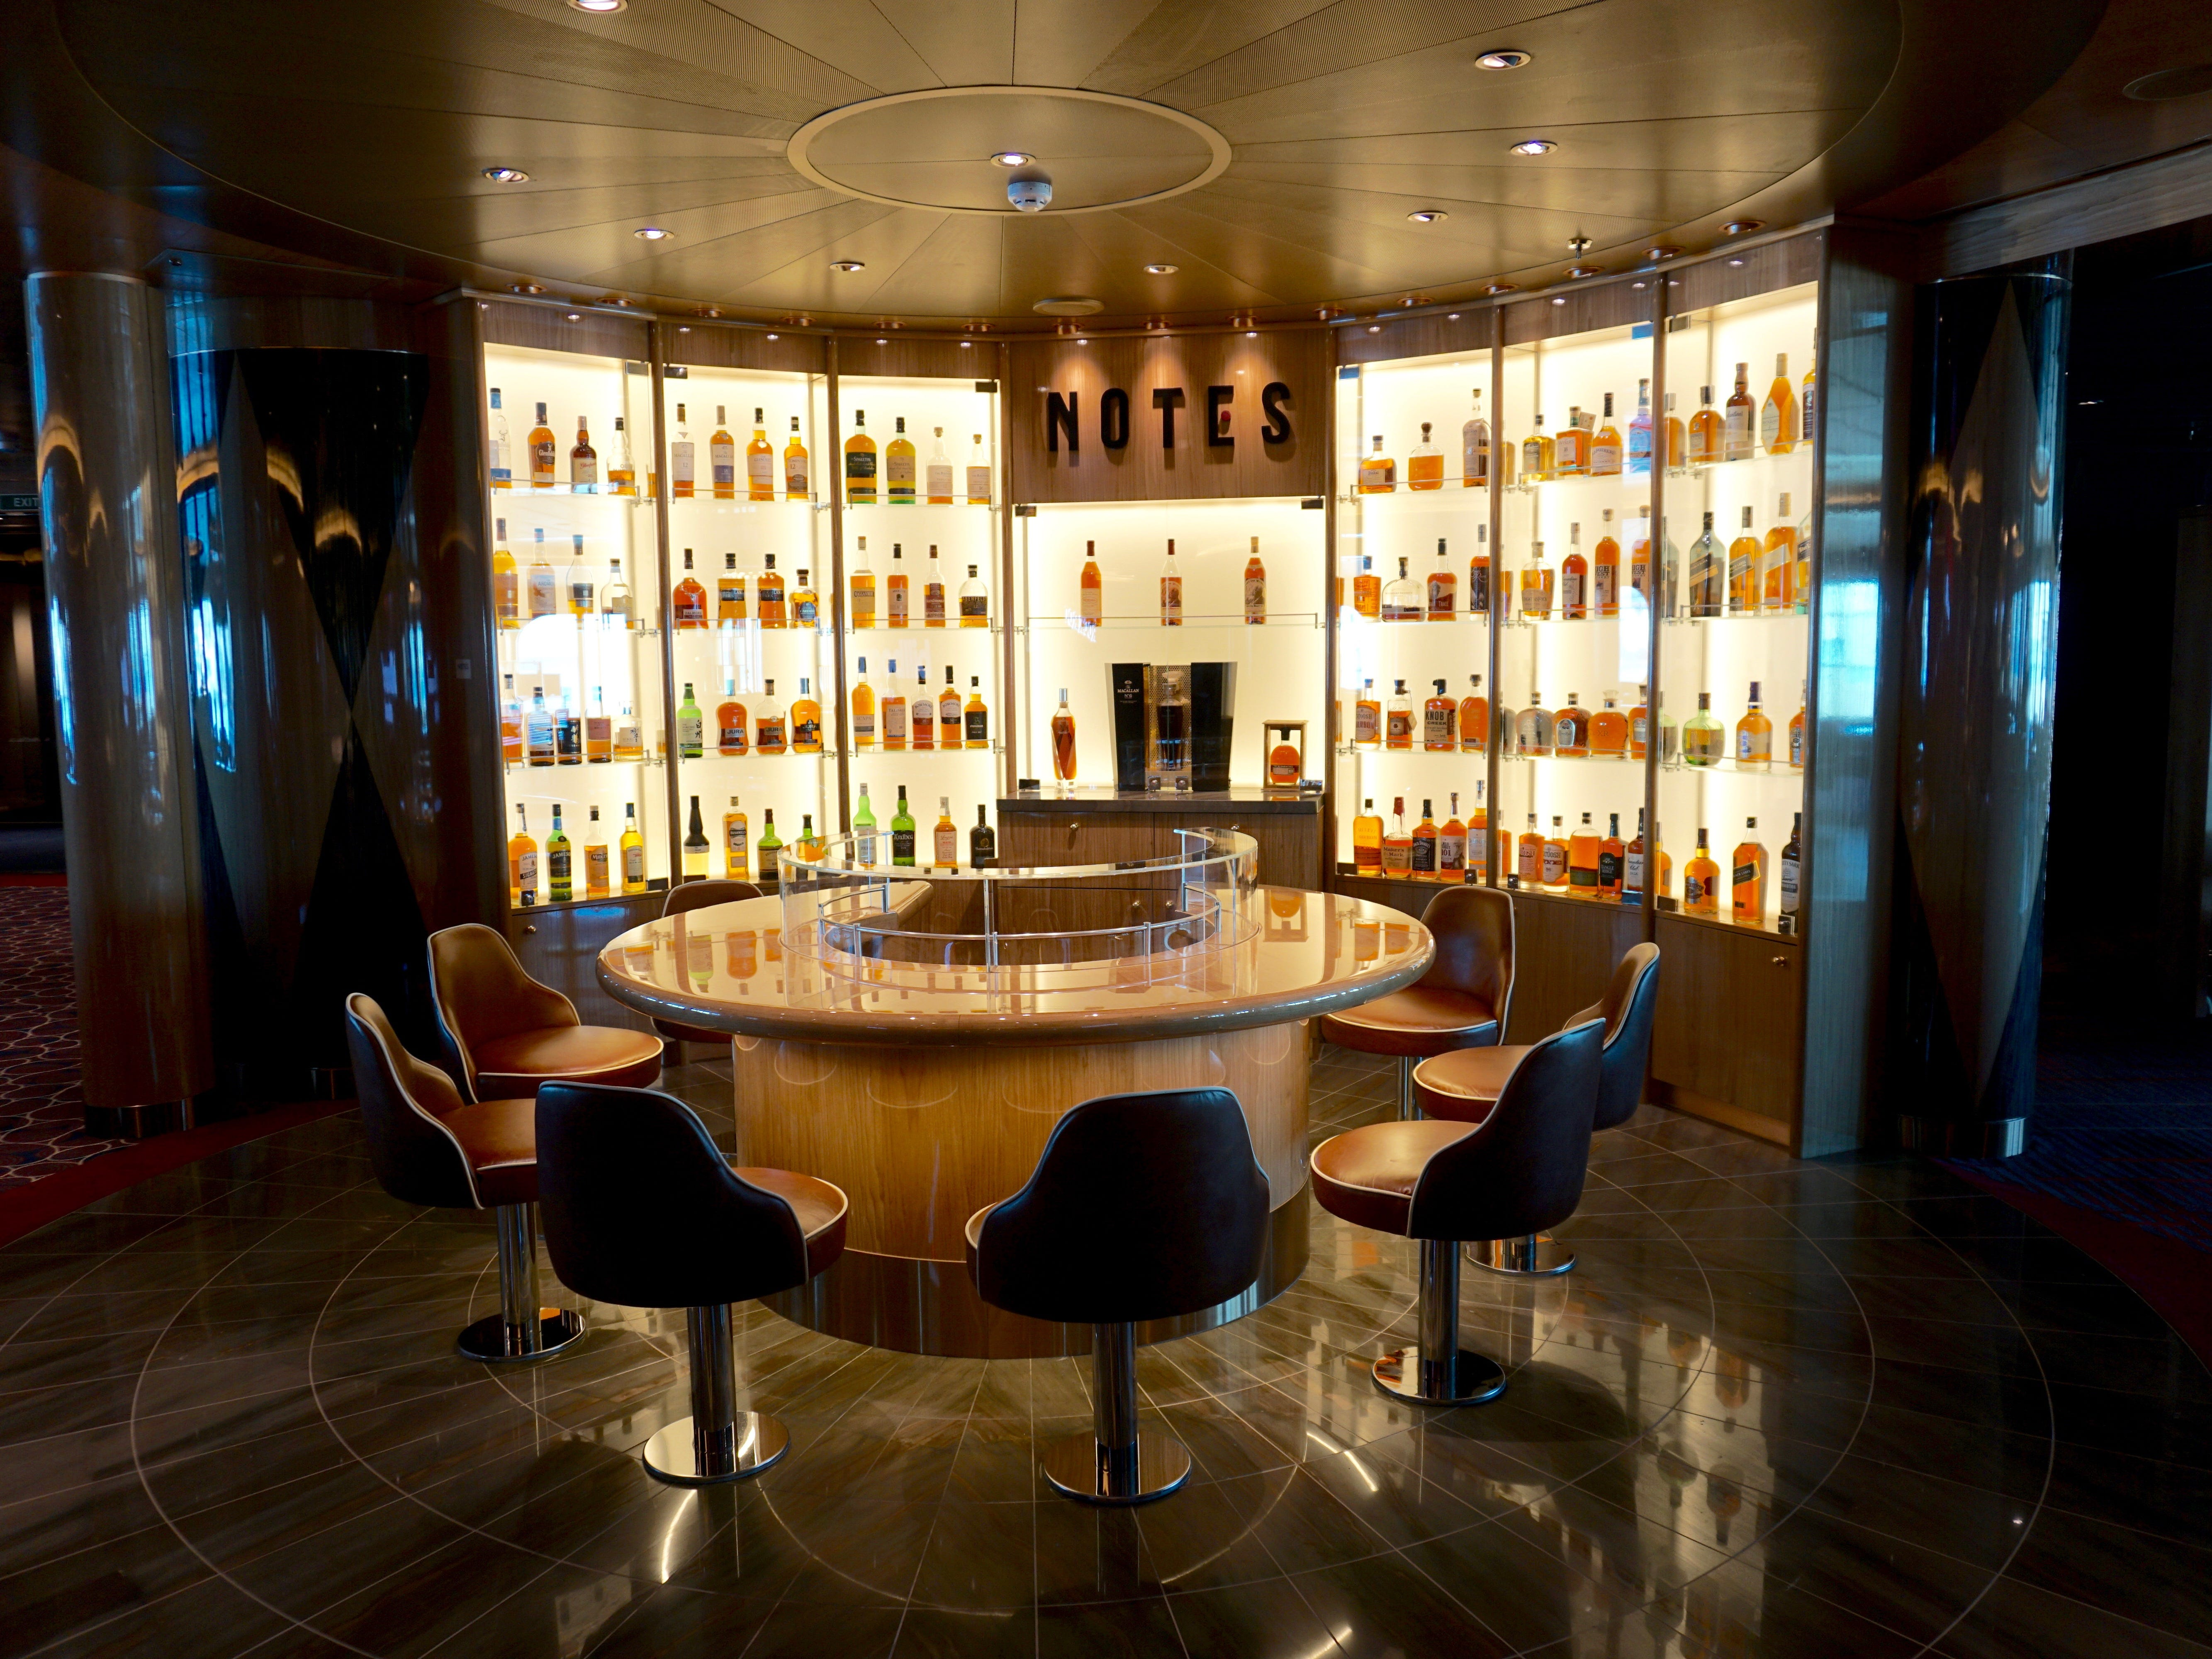 Situated between the Rolling Stone Rock Room and Billboard Onboard, Notes is a dedicated whiskey bar.